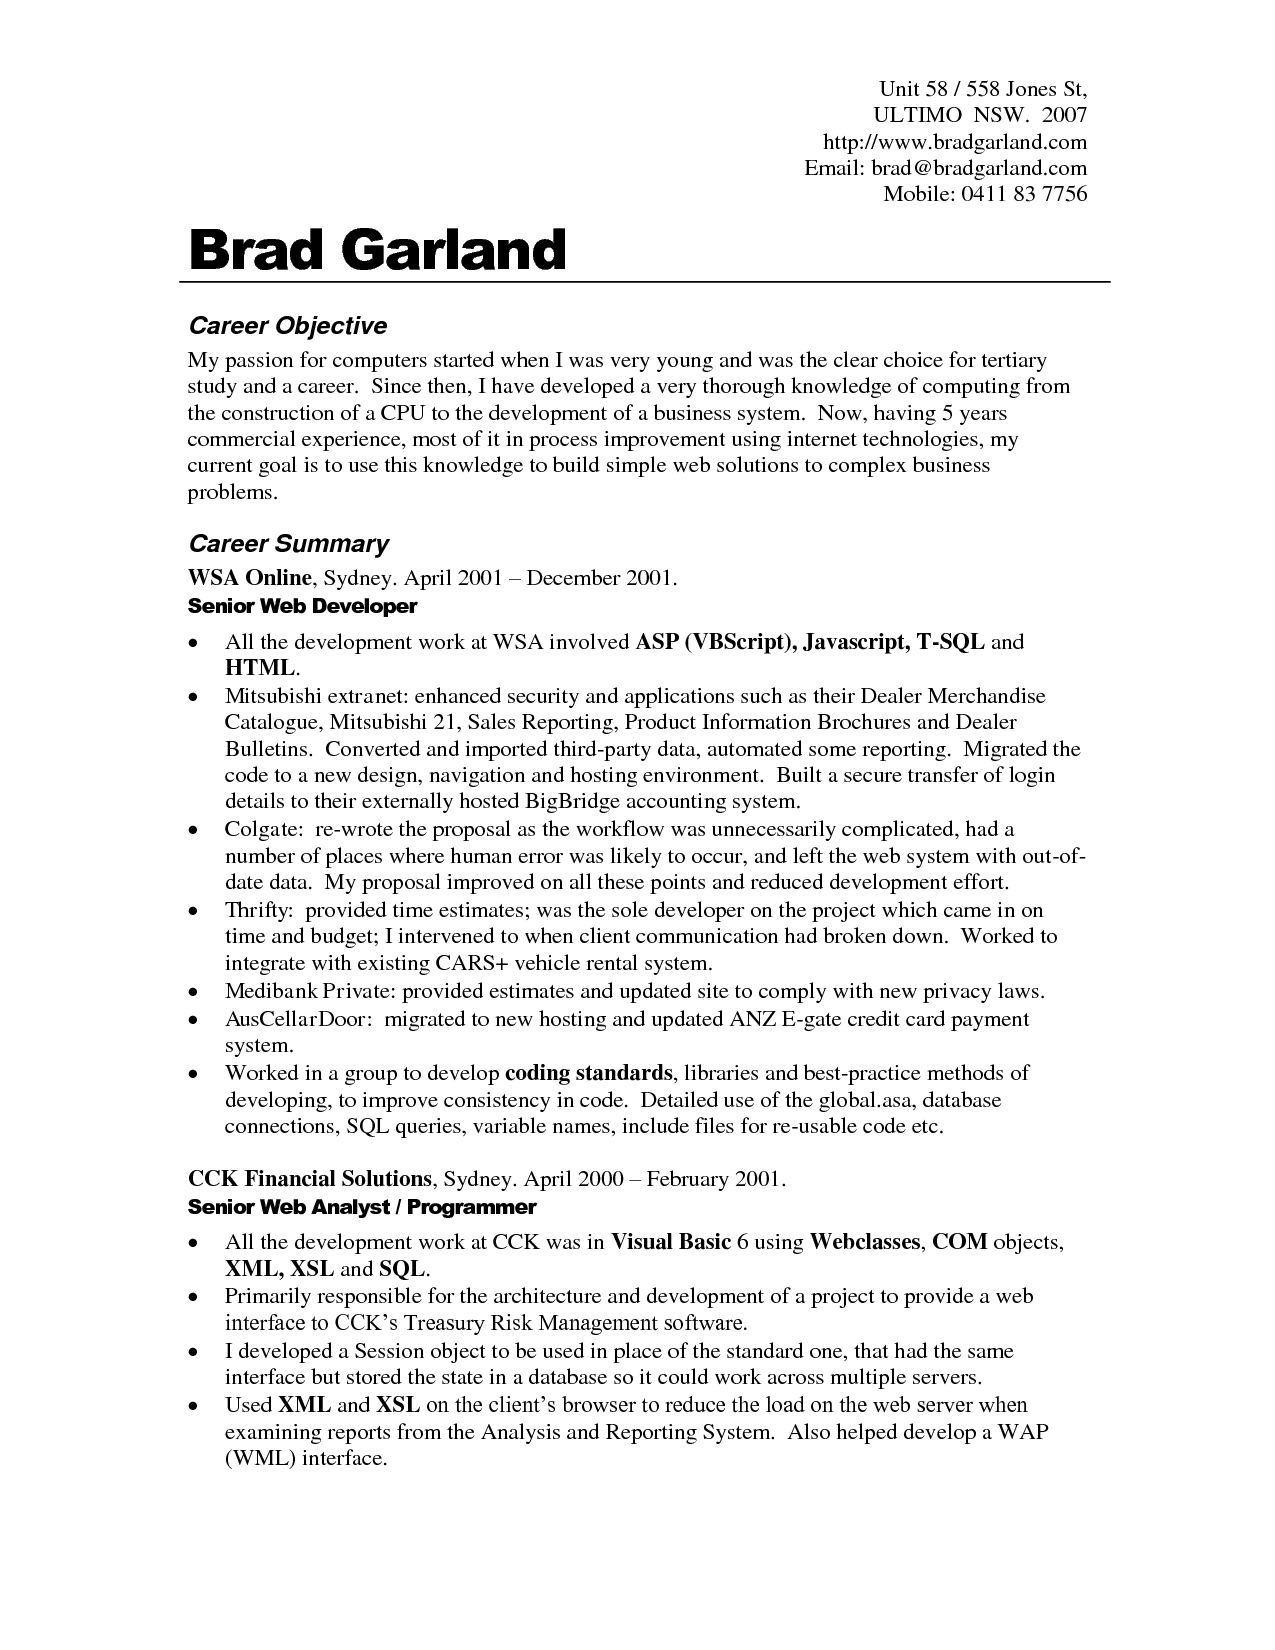 Example Of A Resume For A Job Sample Resume Action Verbs For Lawyers Formatting Back Post